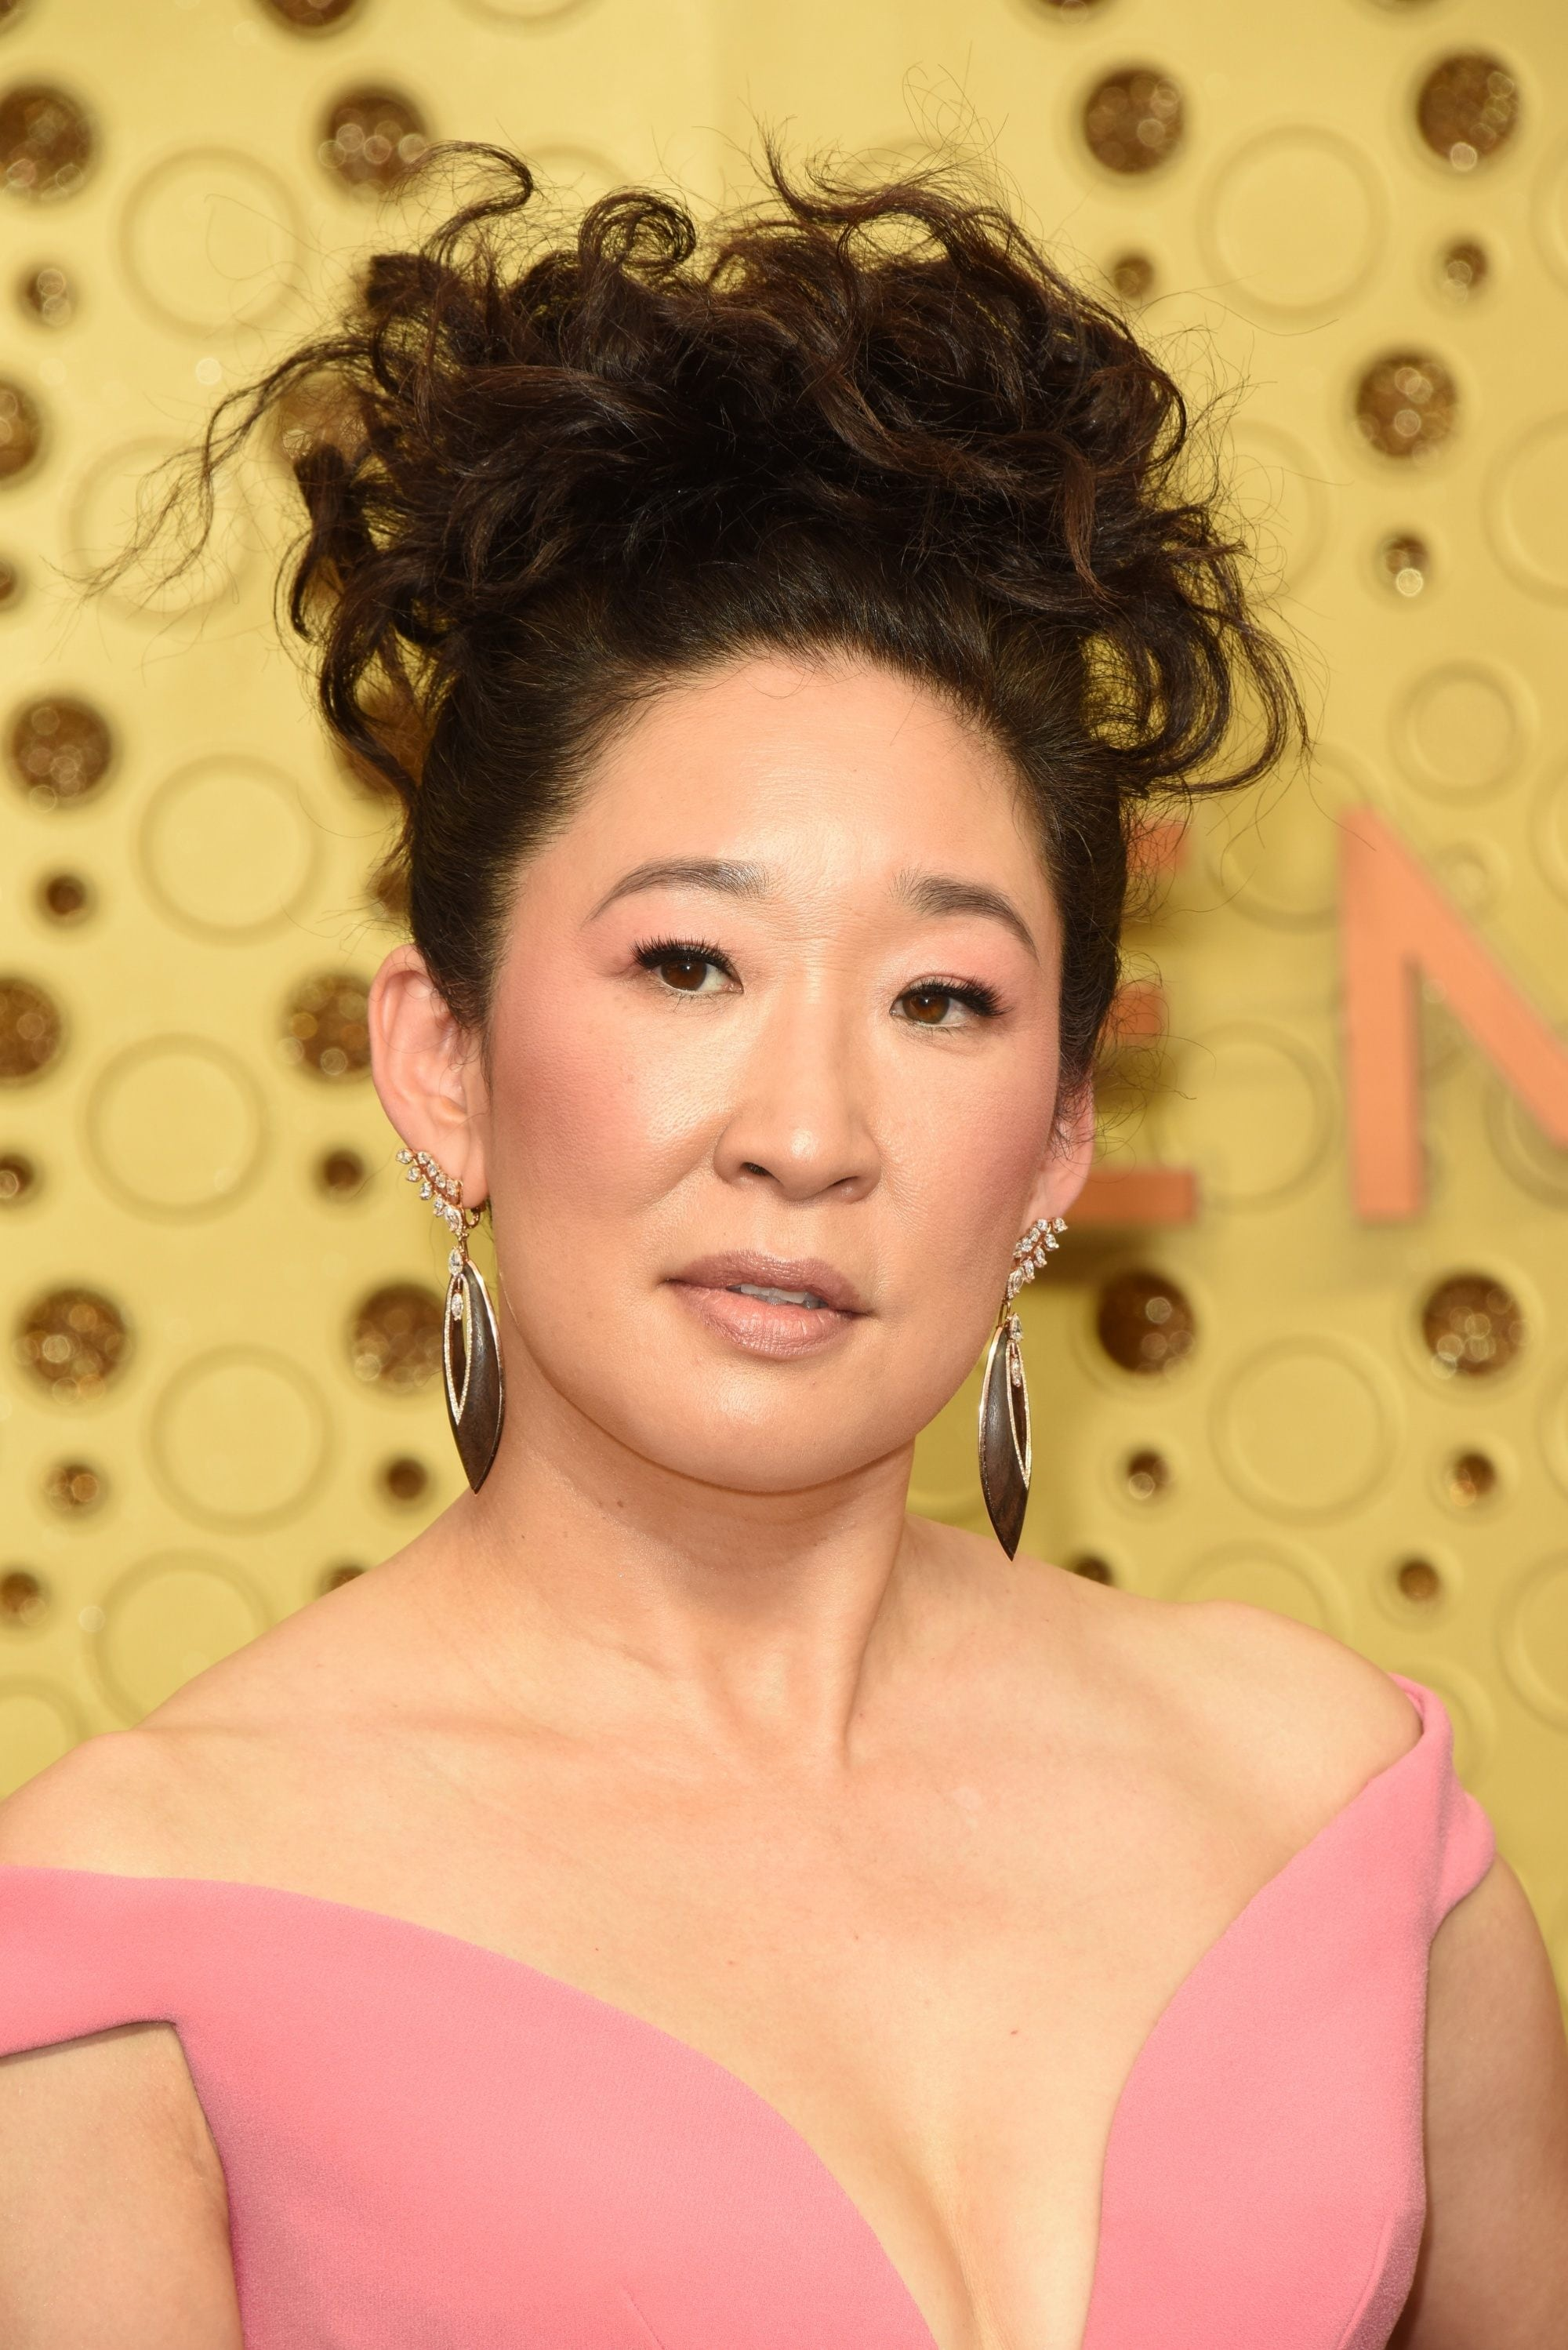 Emmy Awards 2019 Best Hairstyles: Sandra Oh with her curly updo